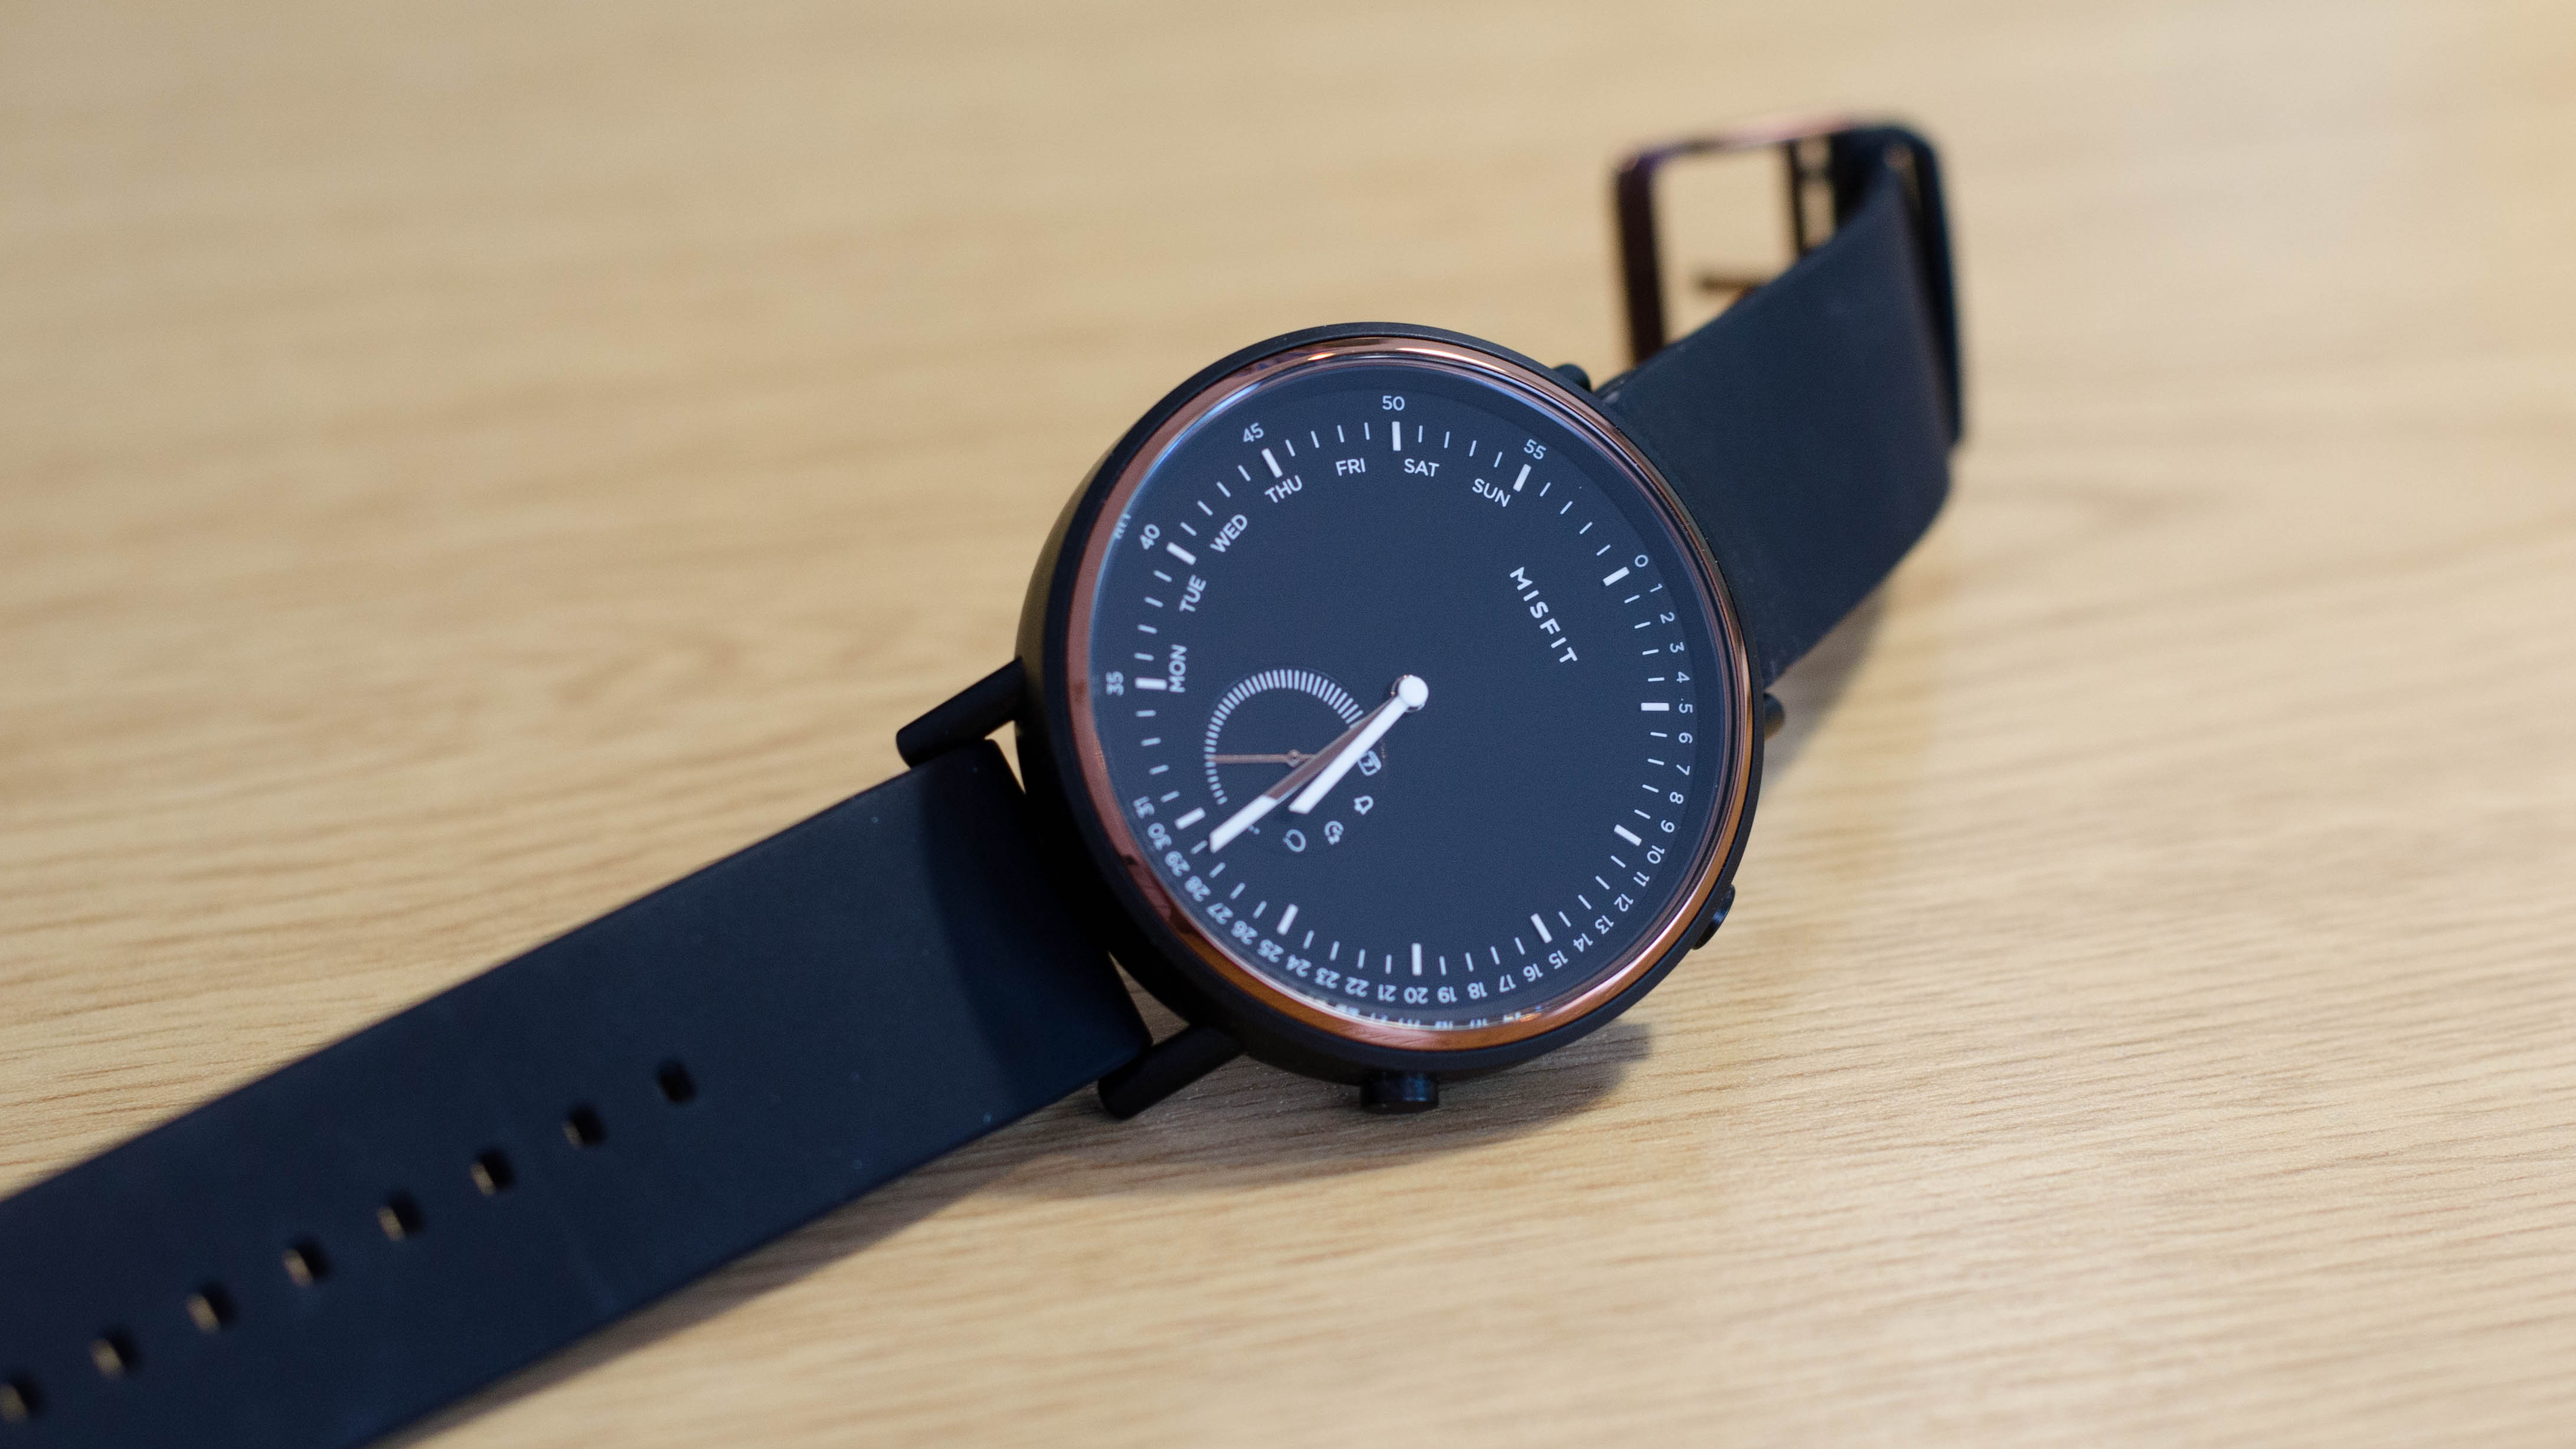 Meet the Misfit Command, a subtle and stylish wearable with notifications, fitness tracking and a battery that lasts a whole year.